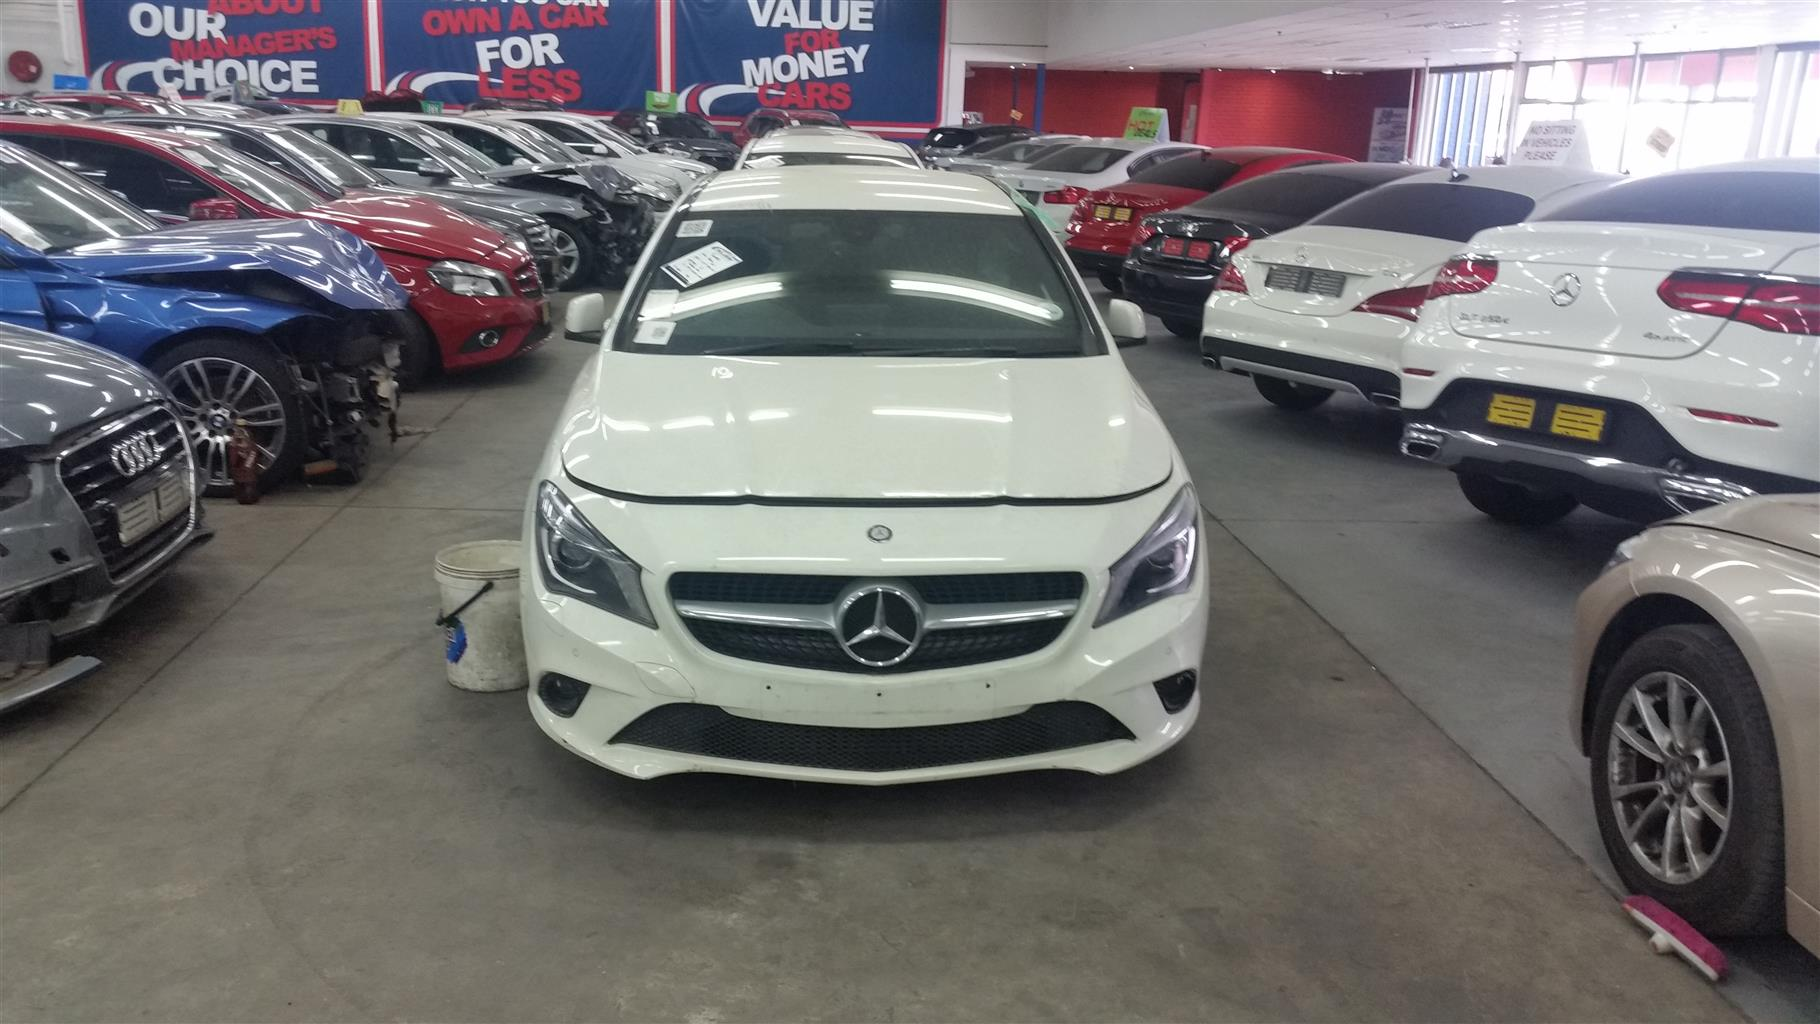 Salvage accident damaged mercedes benz 2015 cla 220 a t for Salvage mercedes benz